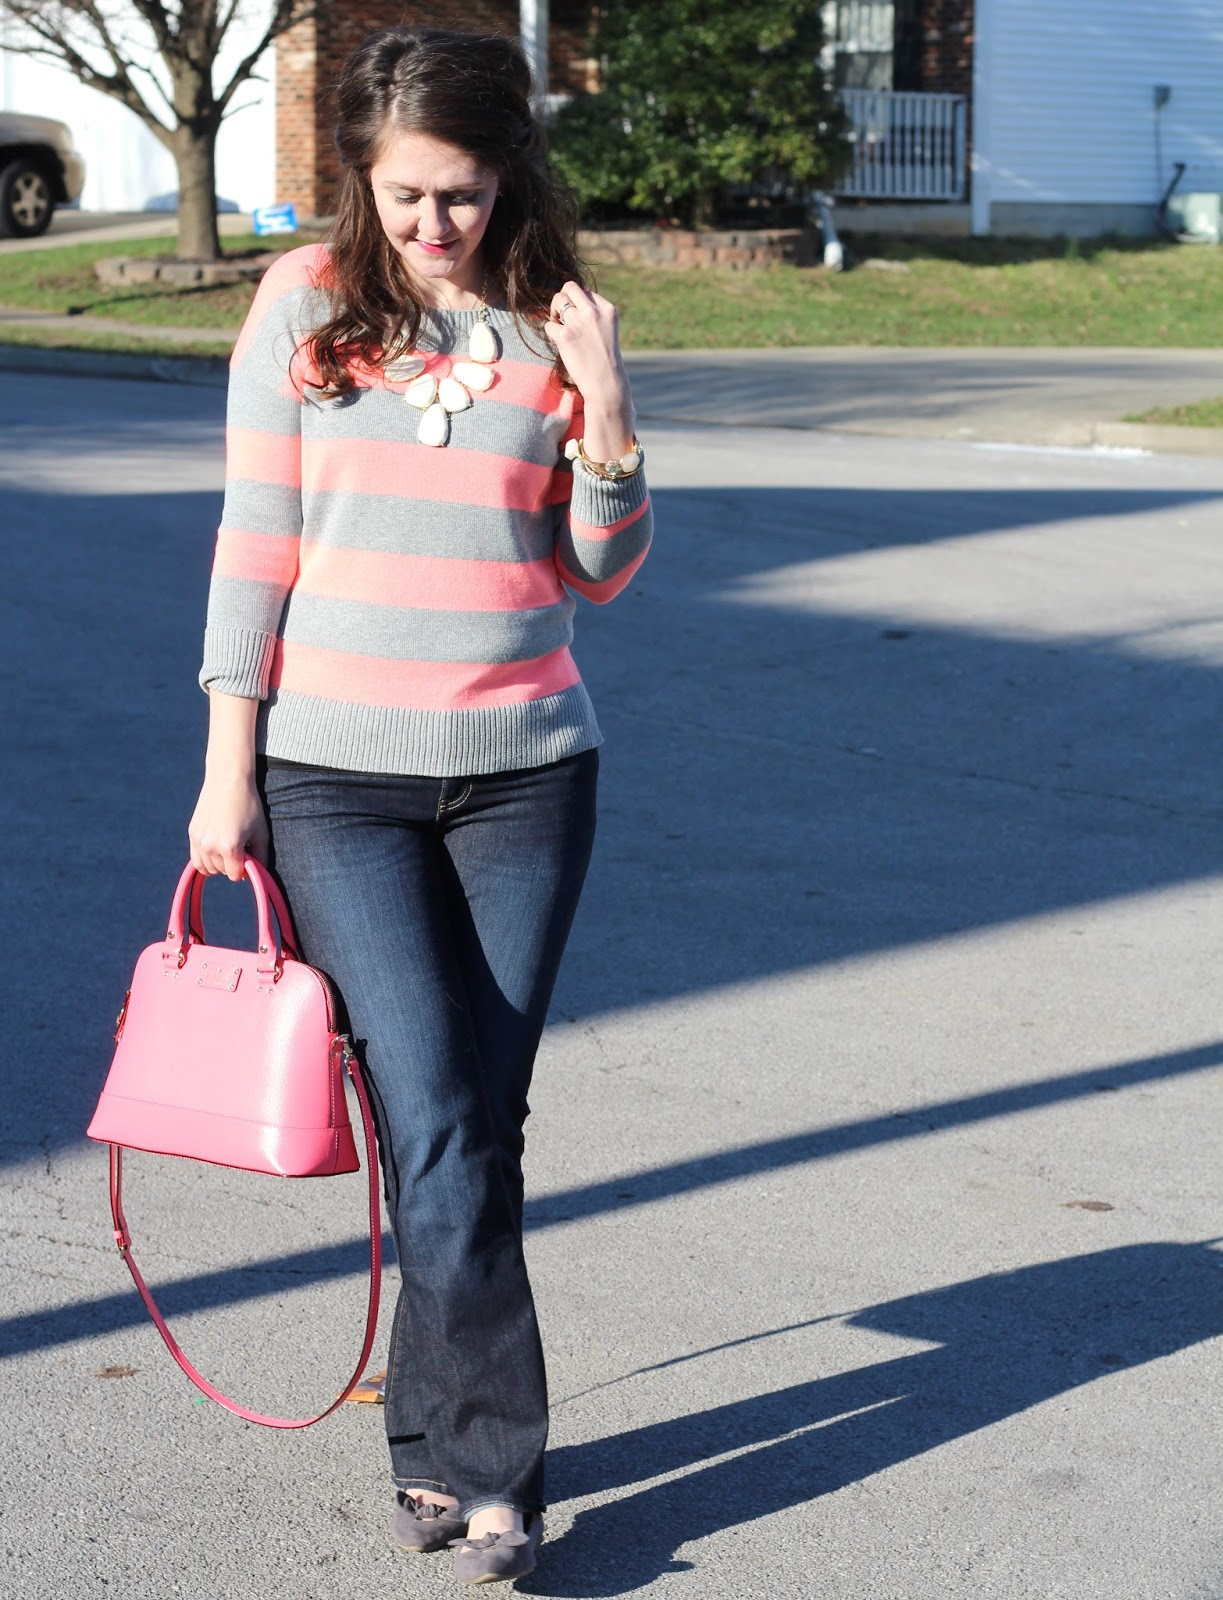 Winter Brights and the Return of the Flare Jean